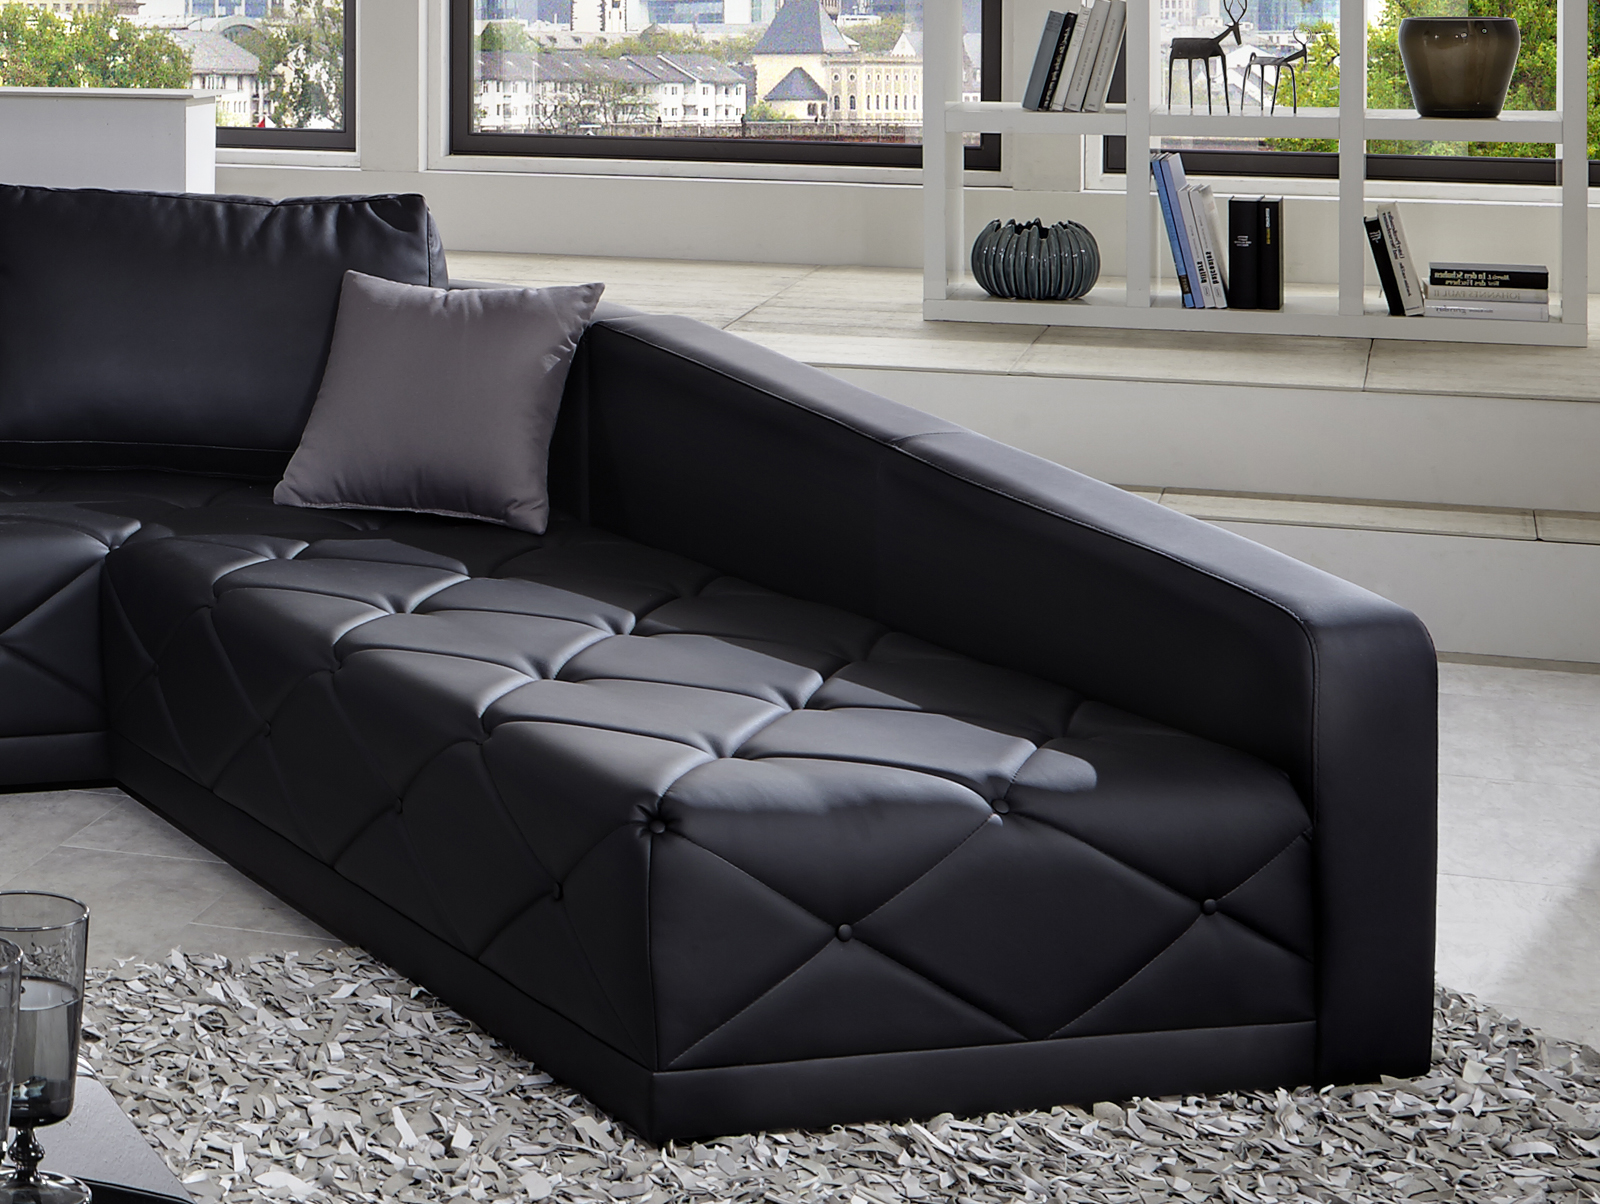 sam design sofa schwarz nero wohnlandschaft 380 x 290 cm bestellware ansicht 2. Black Bedroom Furniture Sets. Home Design Ideas